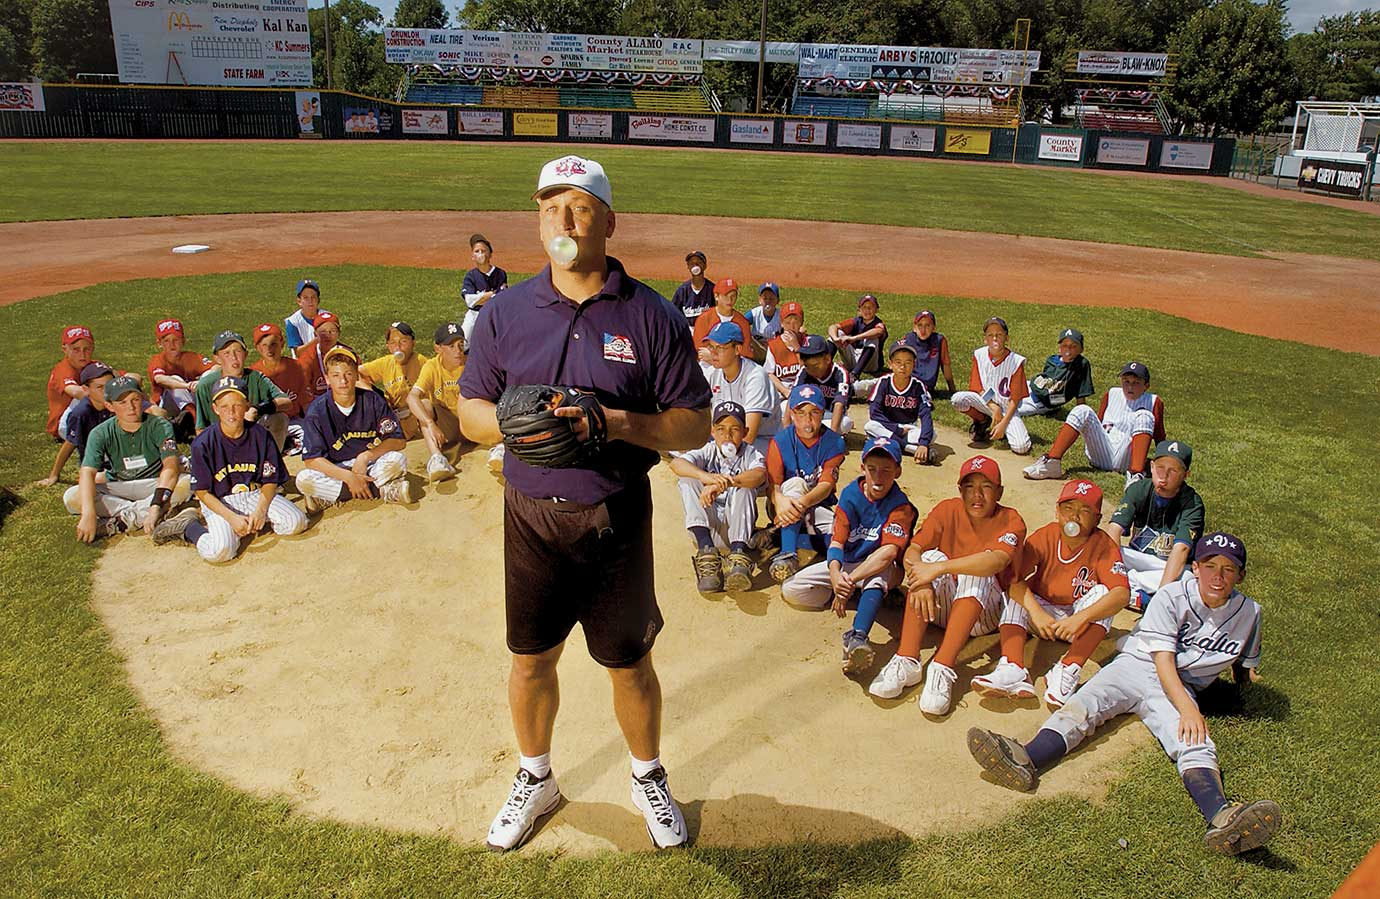 Aug. 16, 2002 (Cal Ripken World Series)